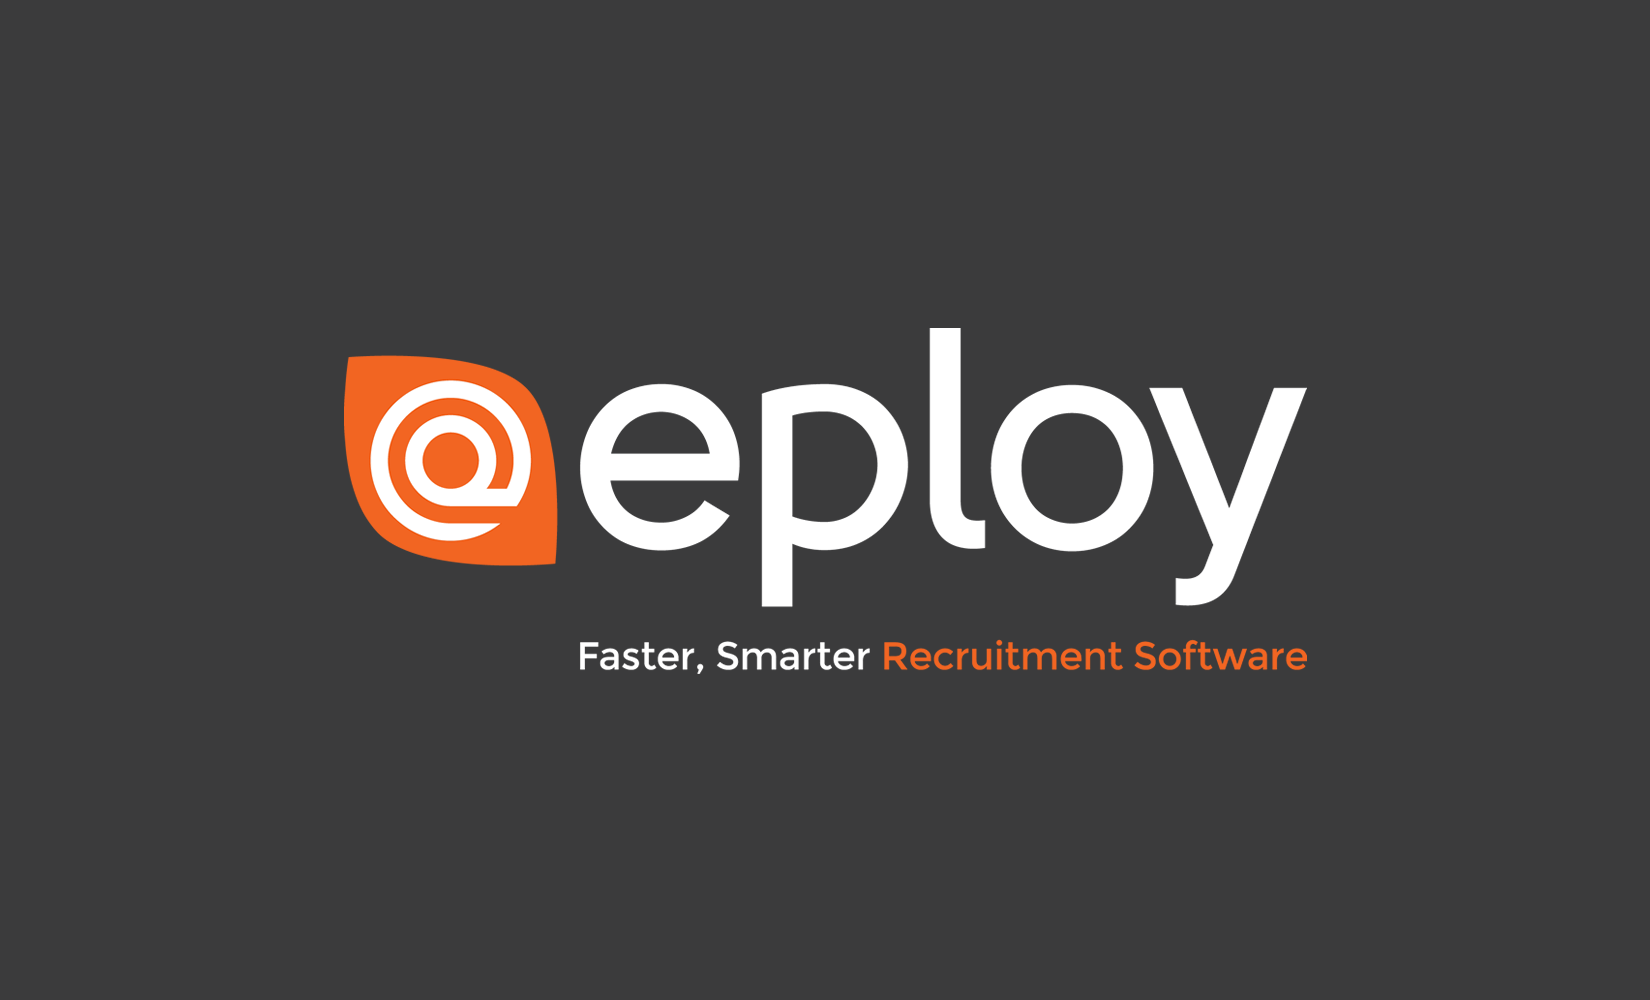 Five Key Takeaways From Our Interview with Eploy